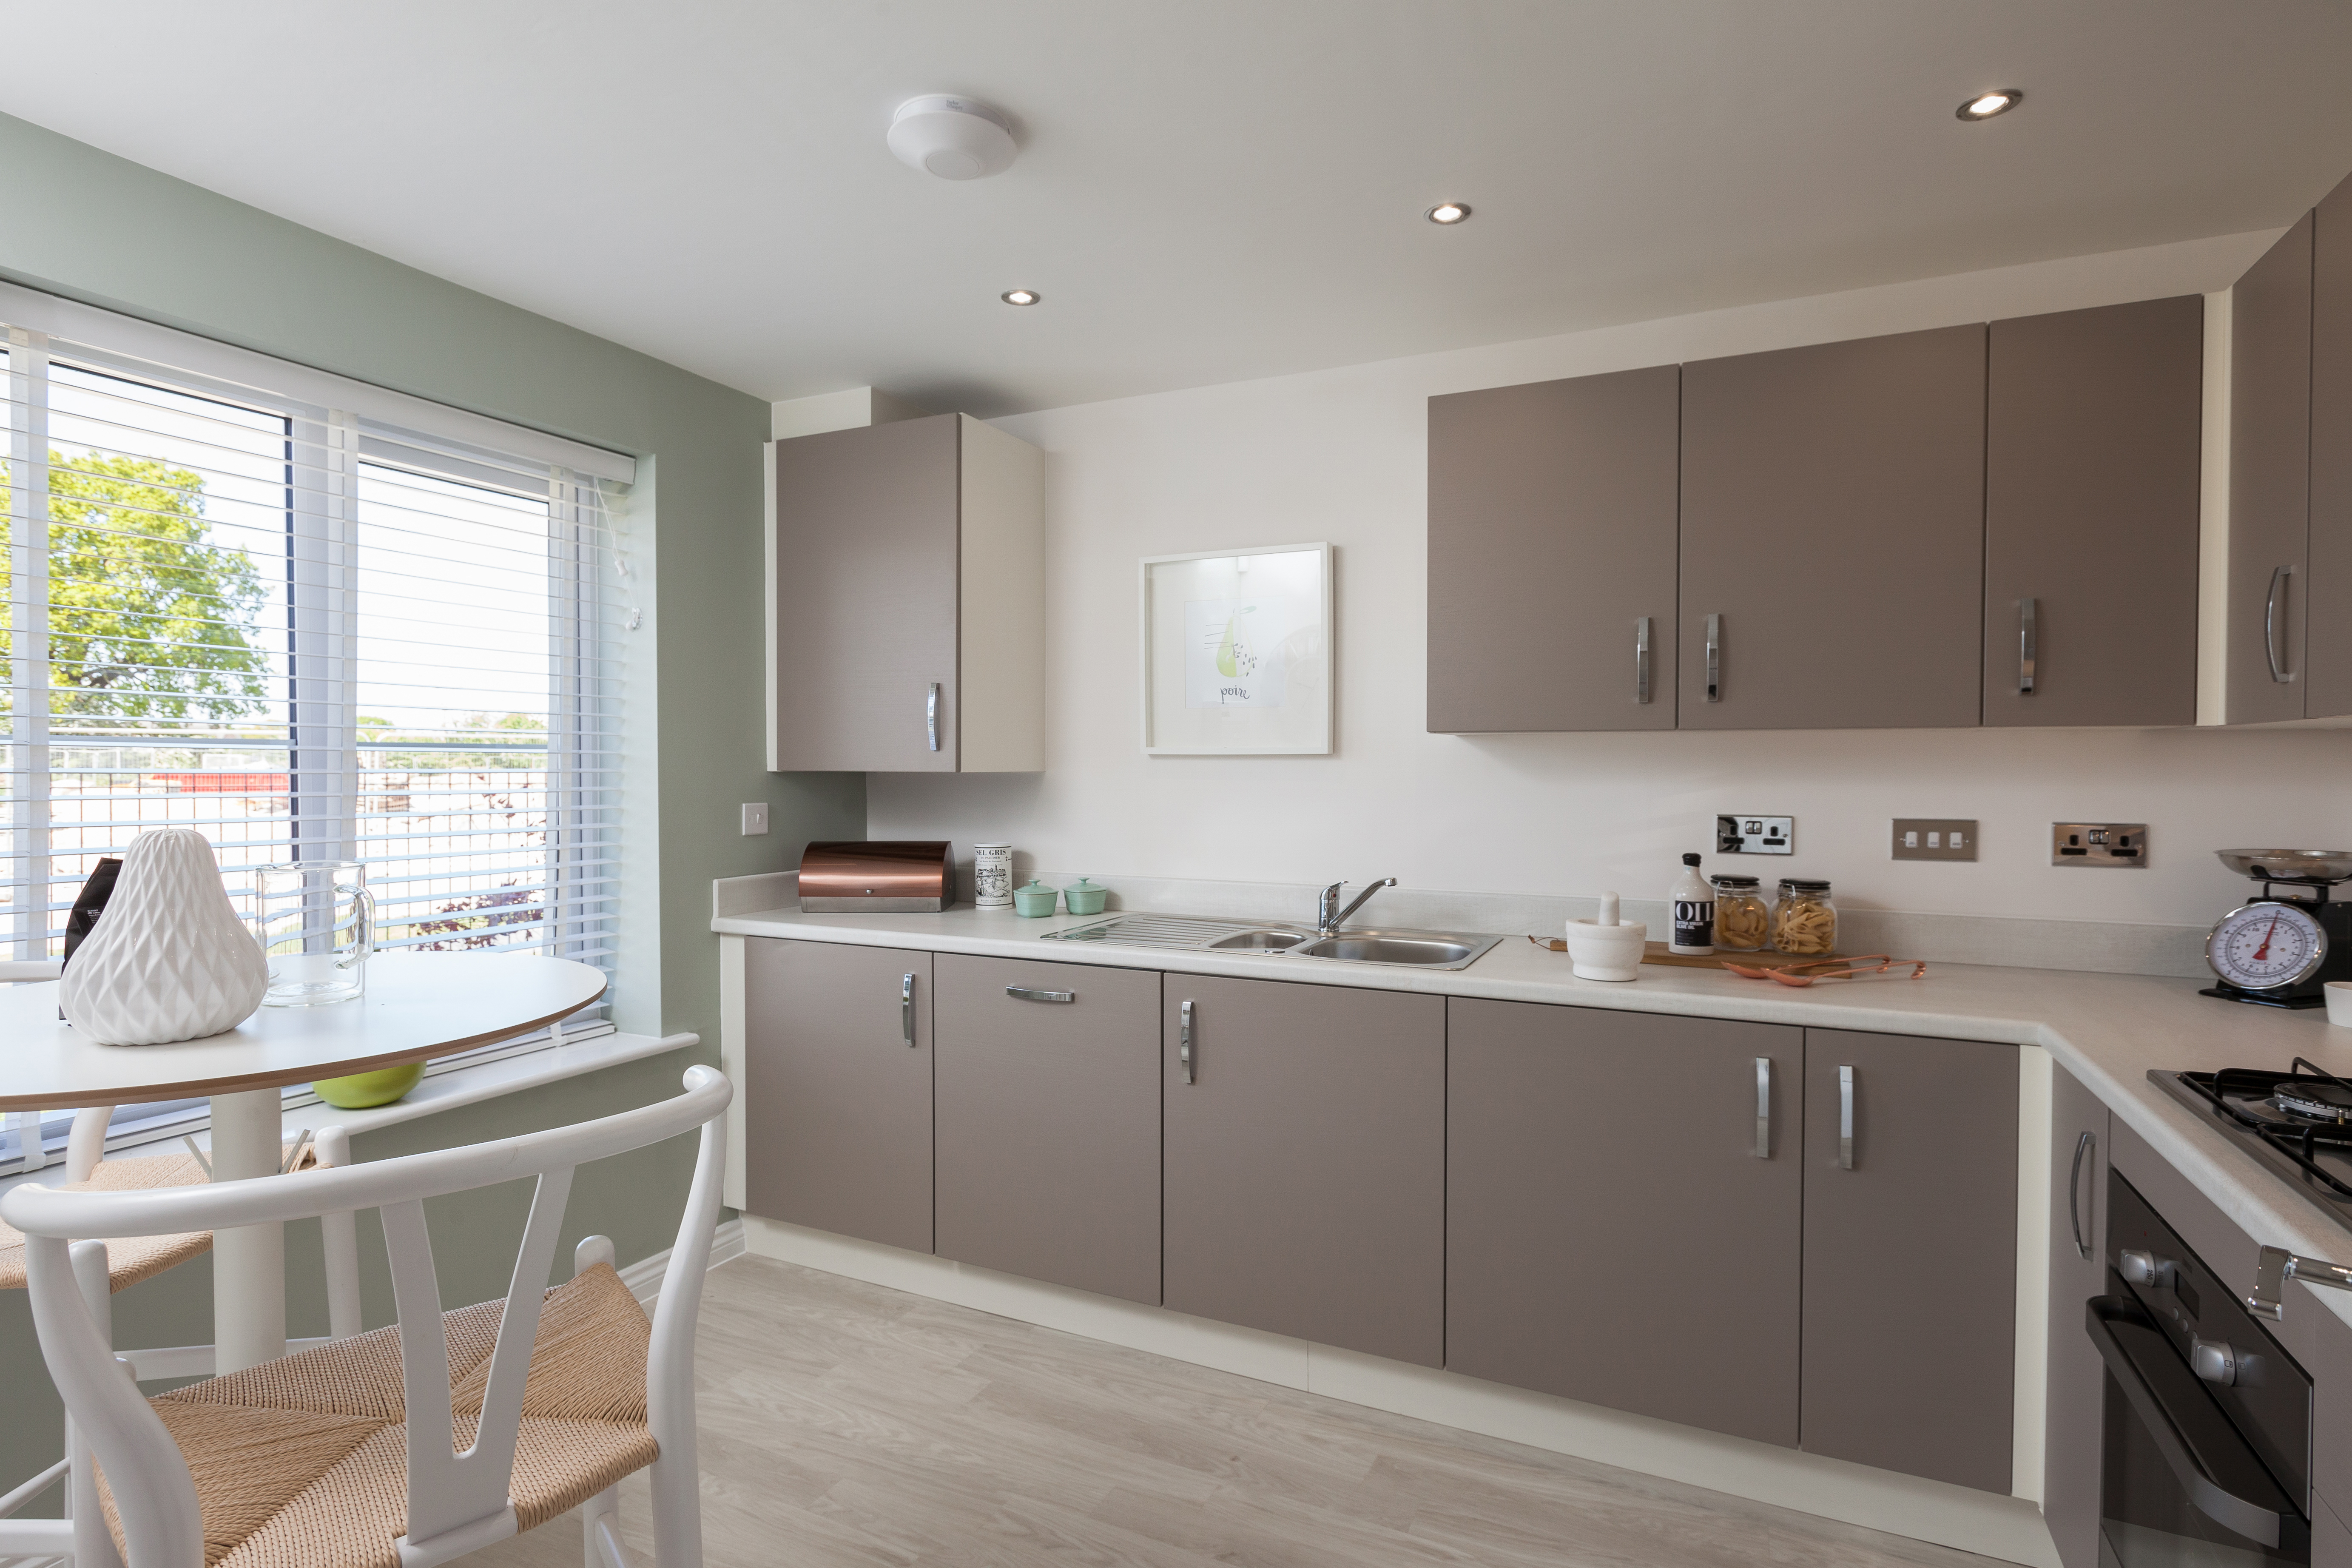 TW NM_Pastures New_Flatford_Kitchen 1